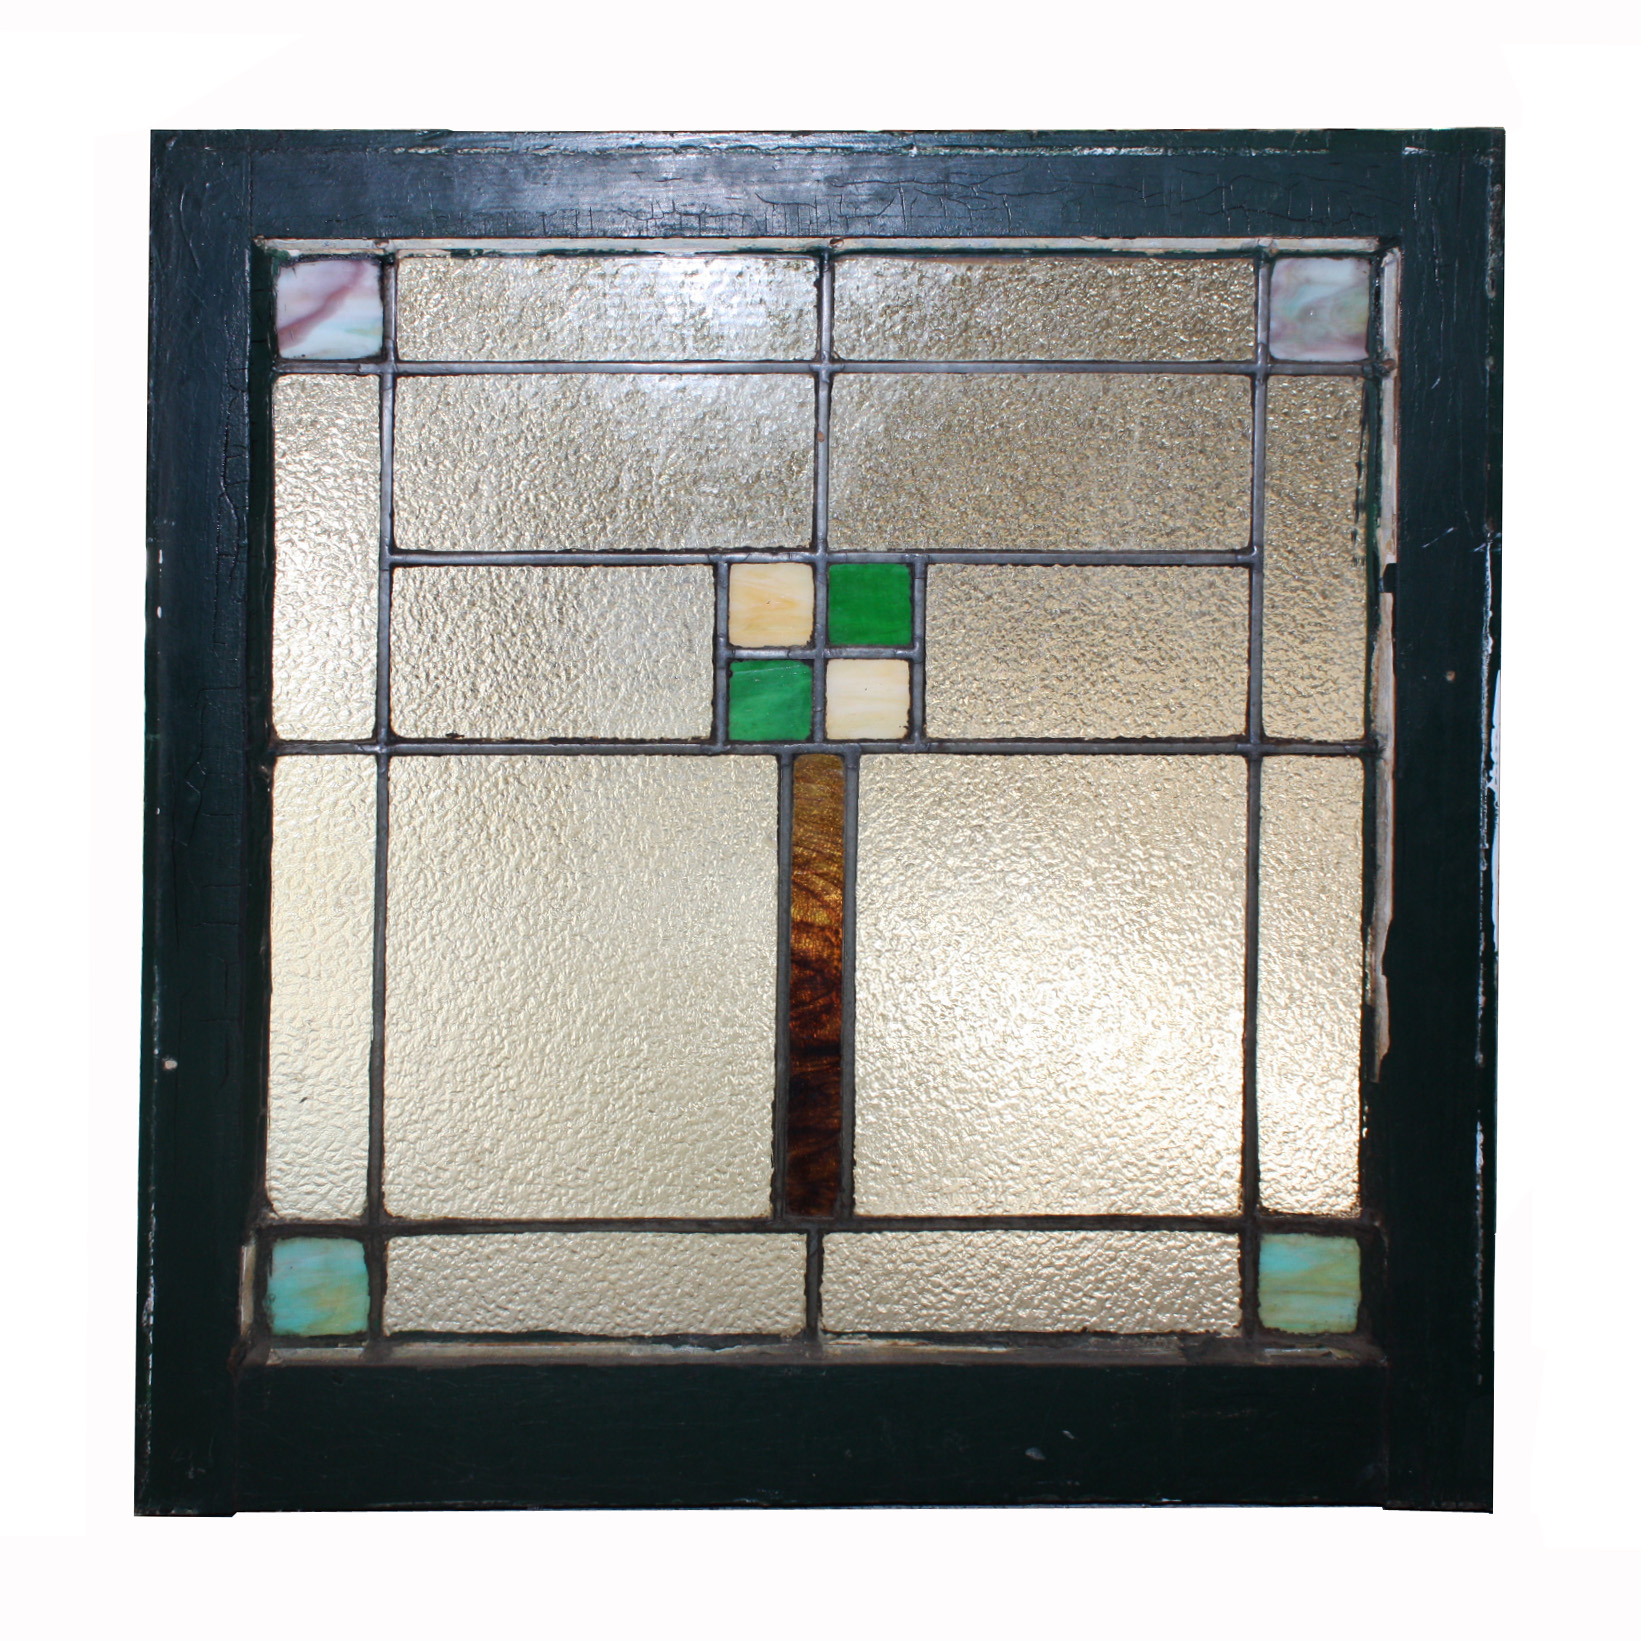 Geometric american arts and crafts stained glass window for 1900 stained glass window